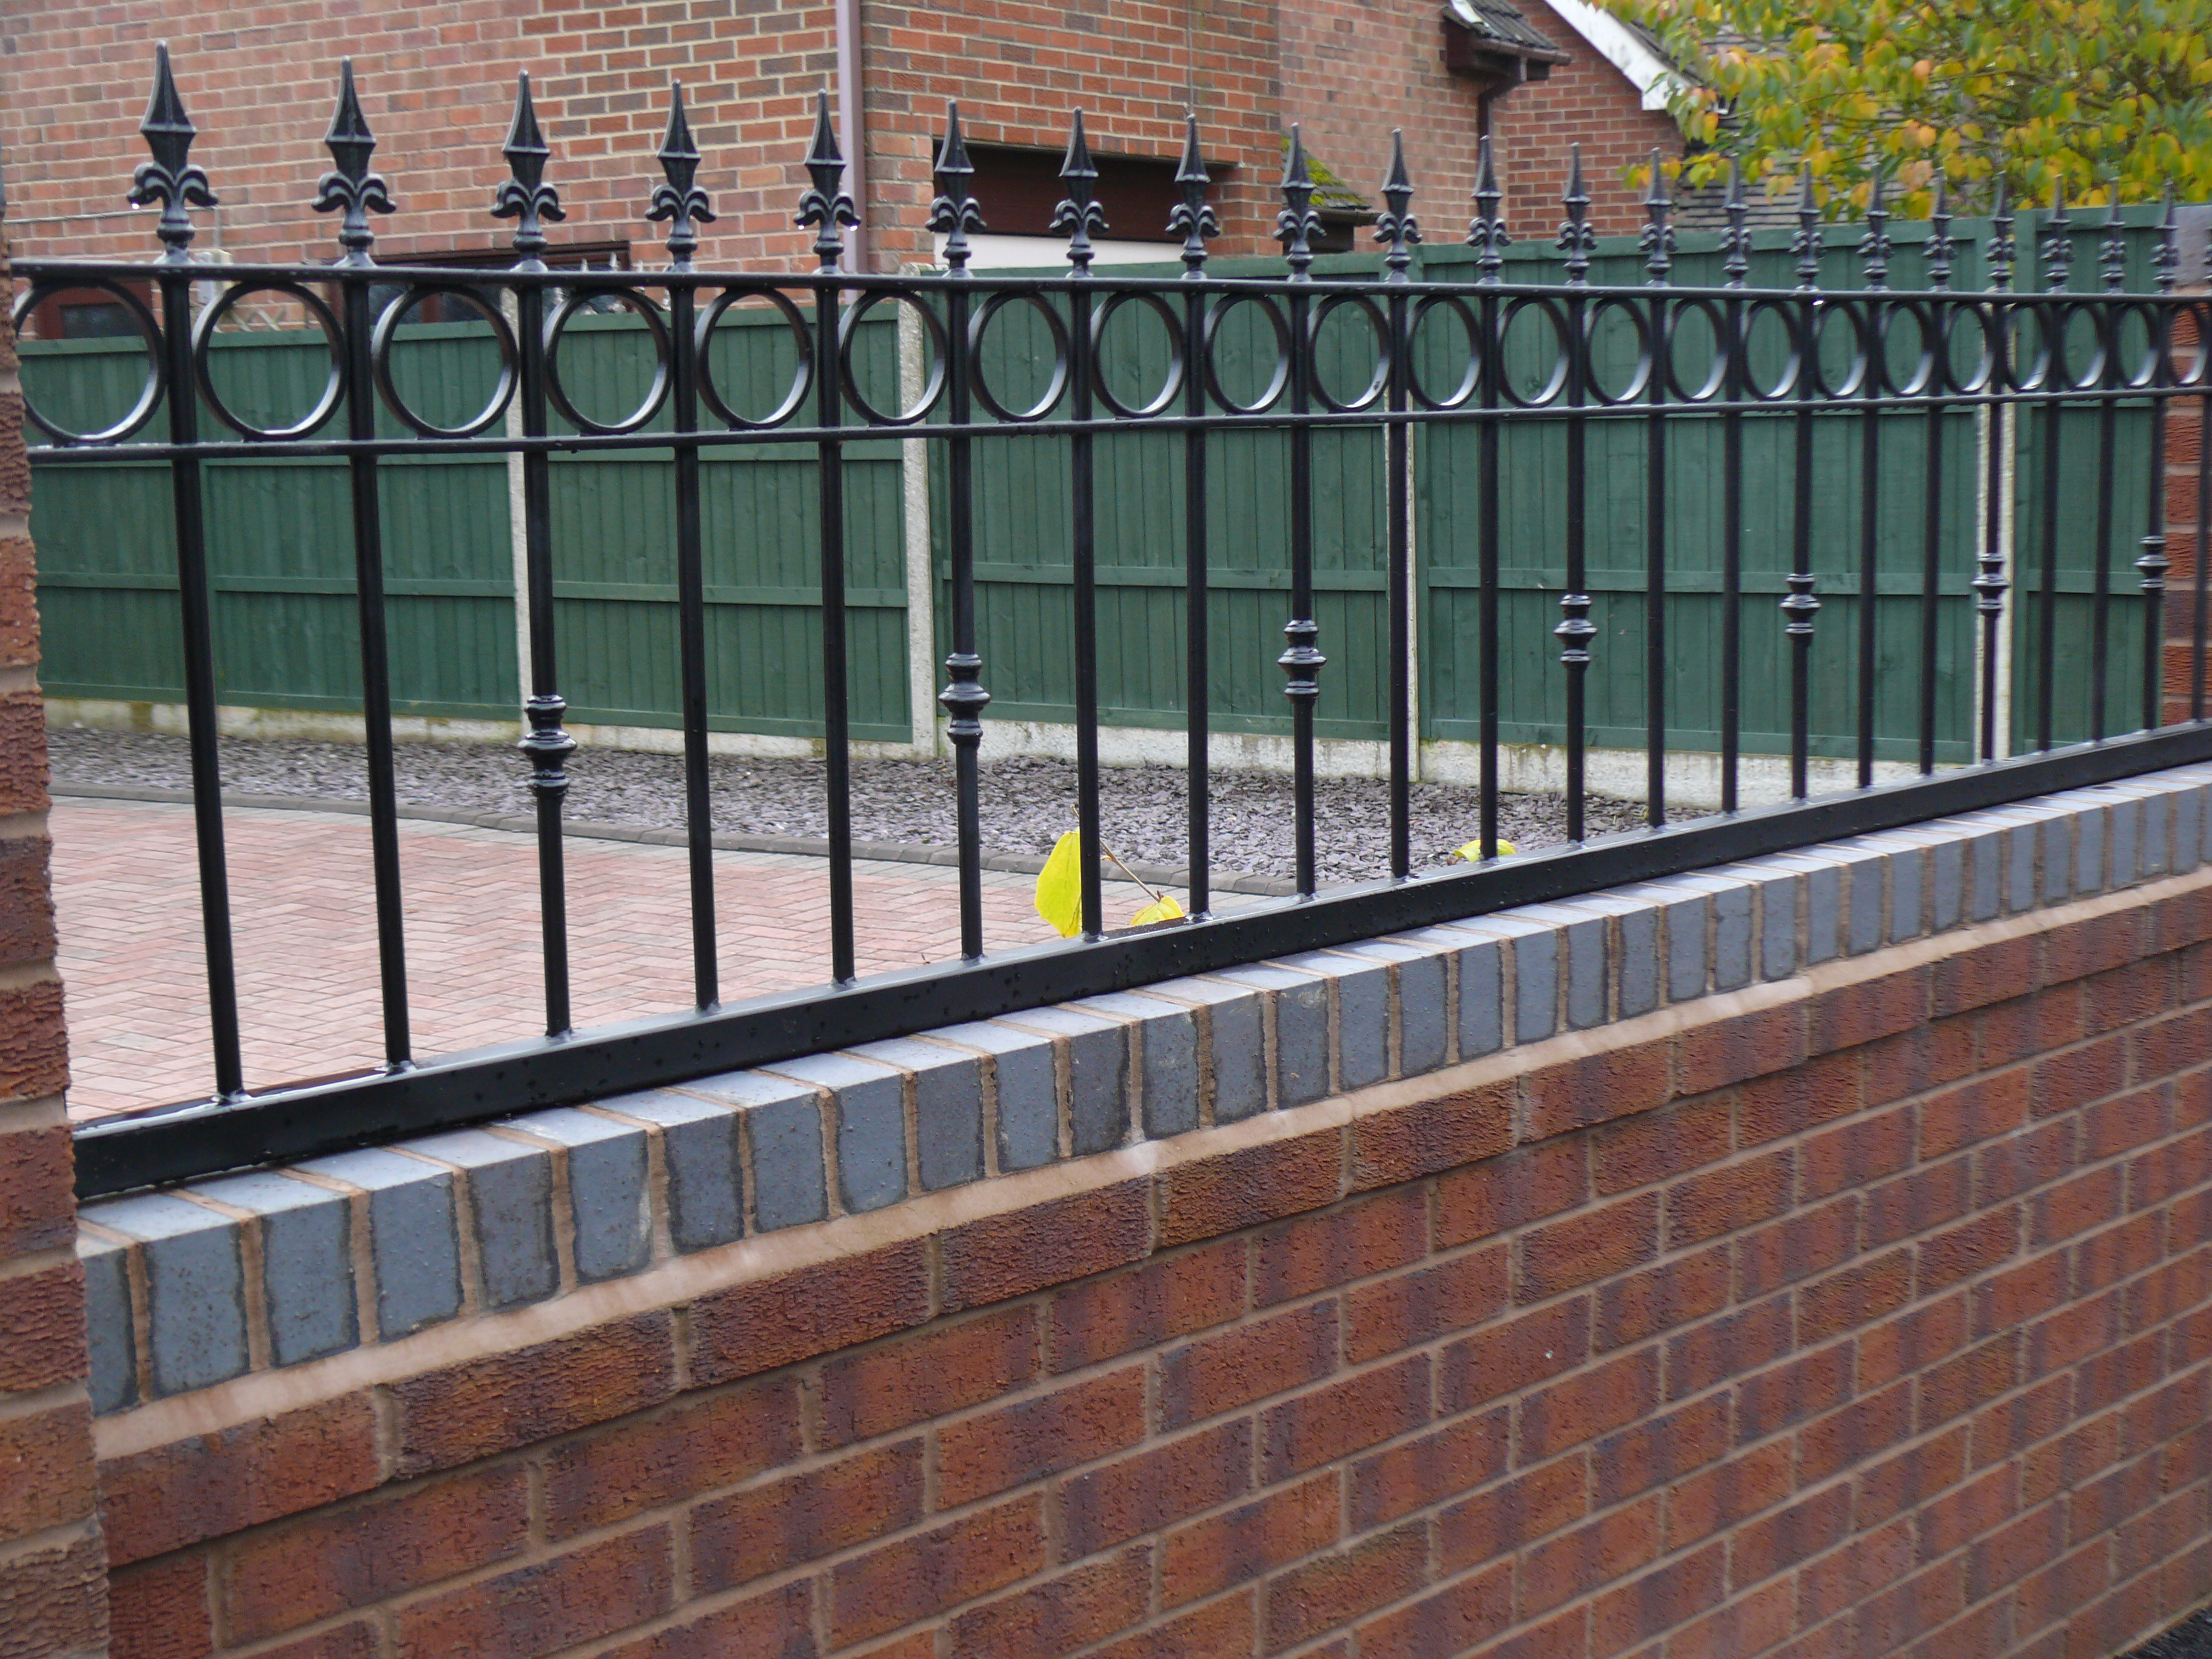 Landscaping in Blythe Bridge - Brick Wall